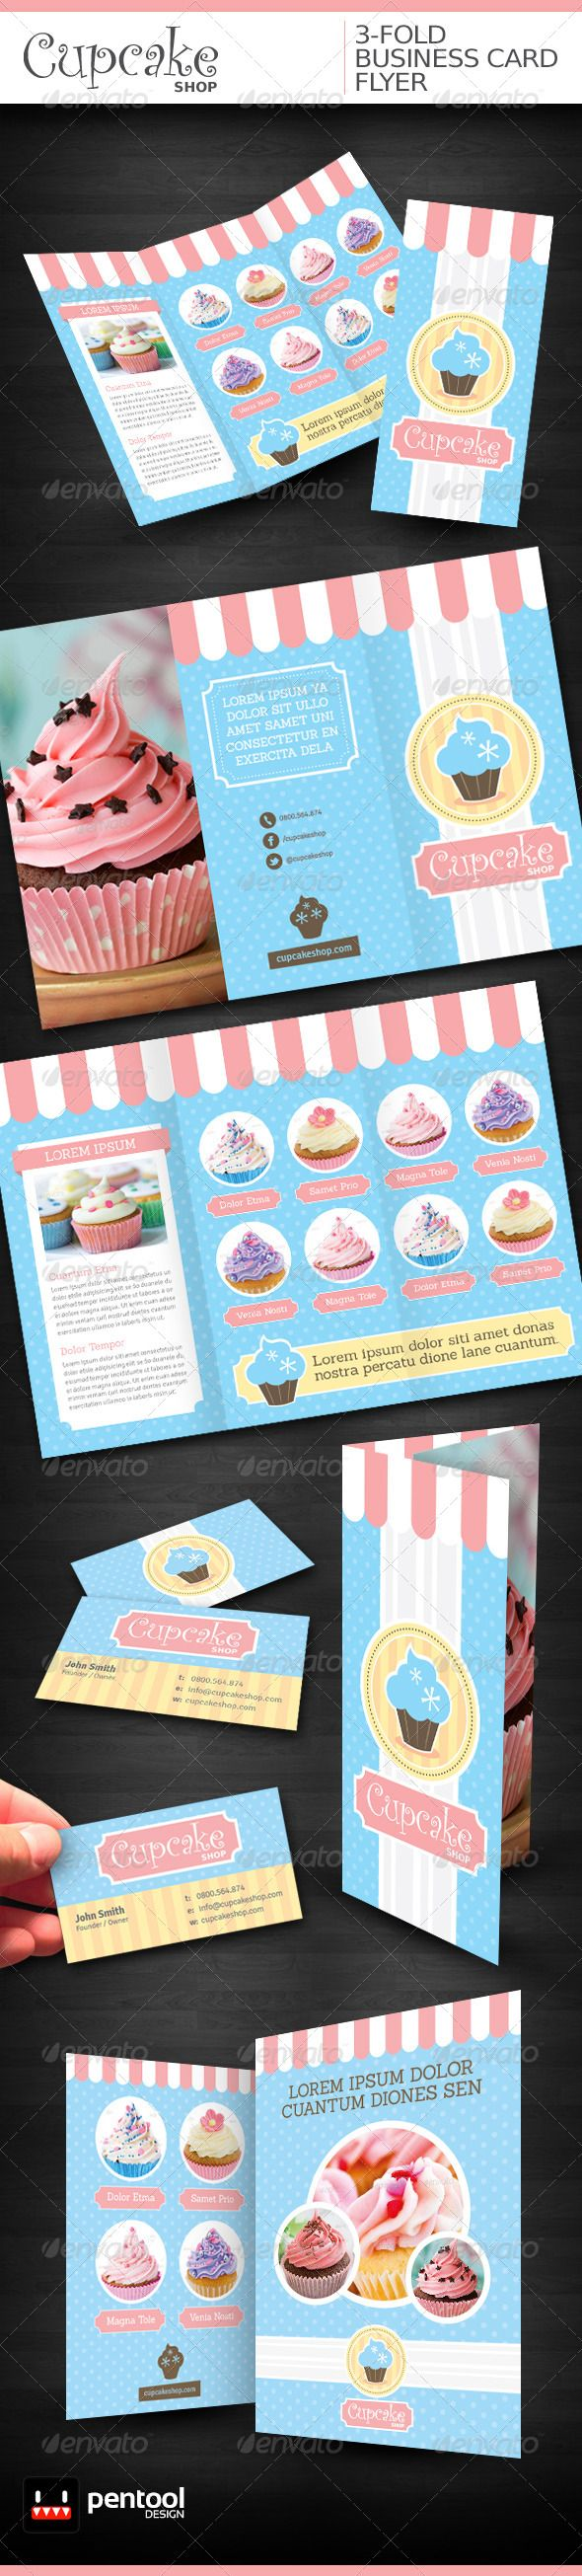 Cupcake Shop 3-Fold/Business Card/Flyer  #GraphicRiver         FEATURES -3-Fold A4 Format -Business Card 3.5×2 in -Flyer 5.8×8.3 in -CMYK